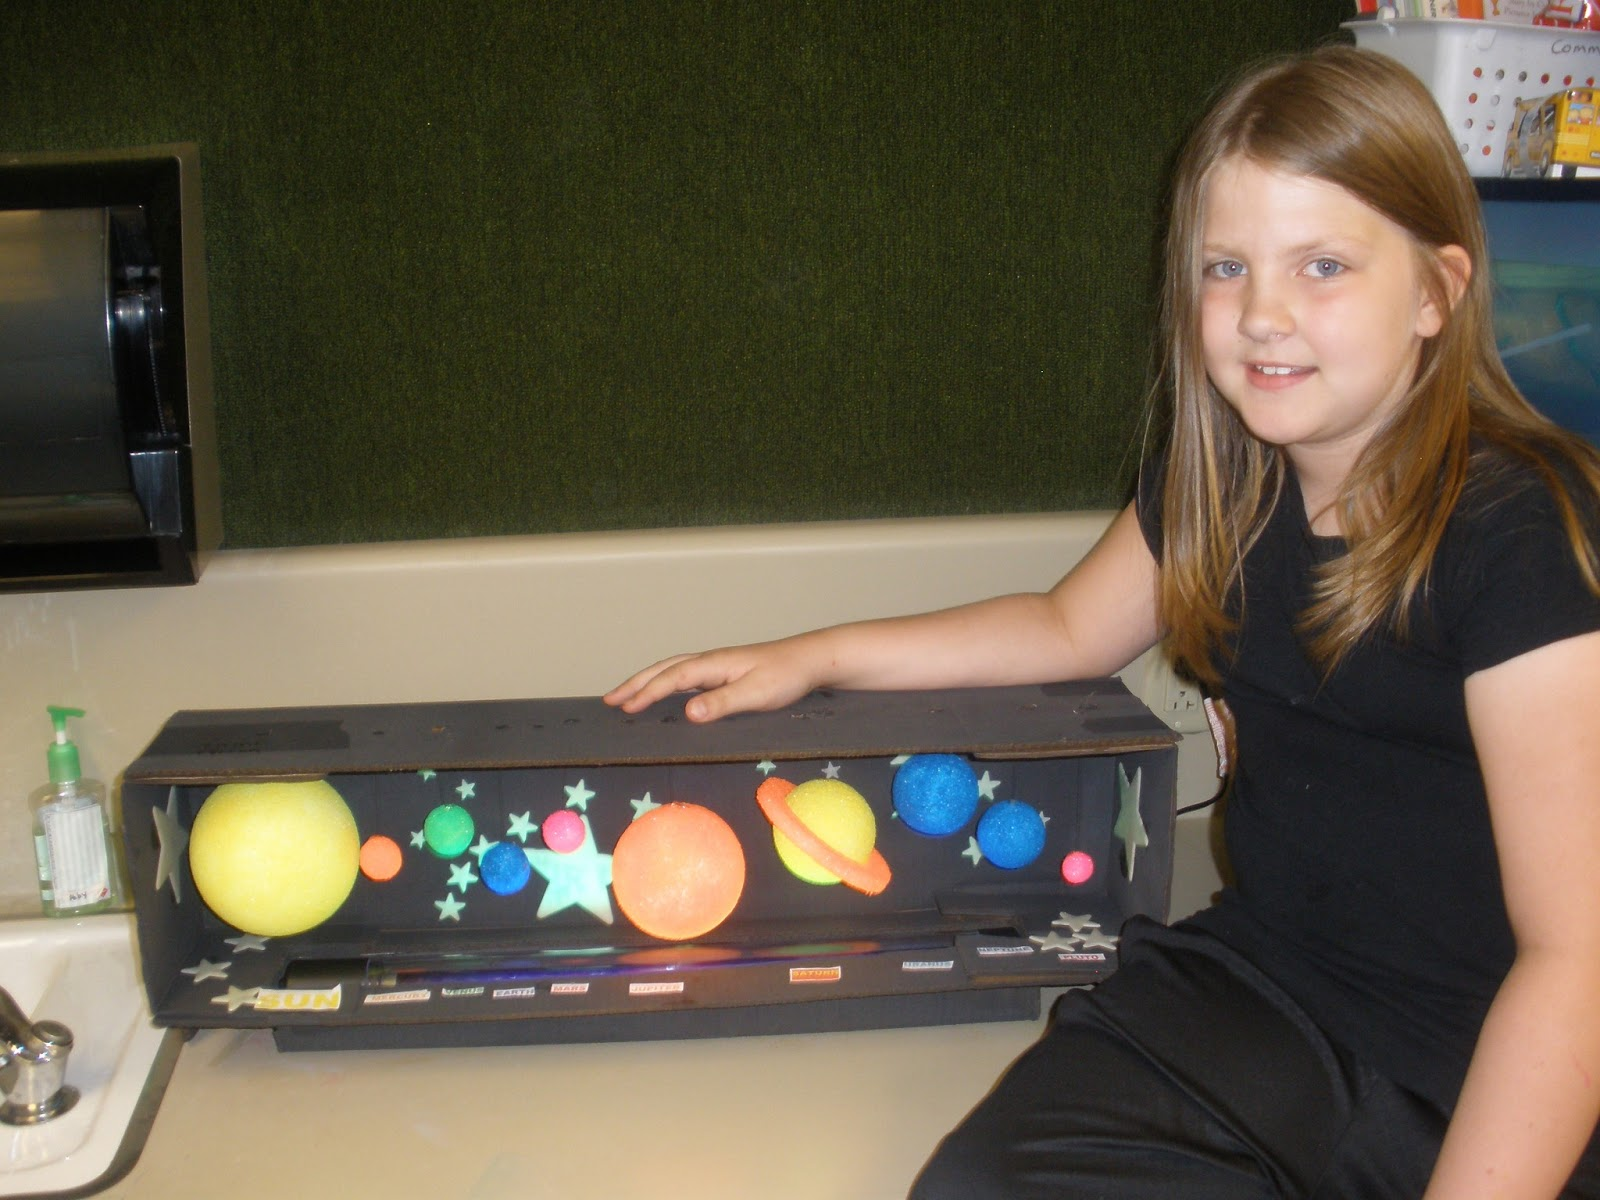 solar system school project Build a solar system model with free planets print out in this fabulous science projects for kids.